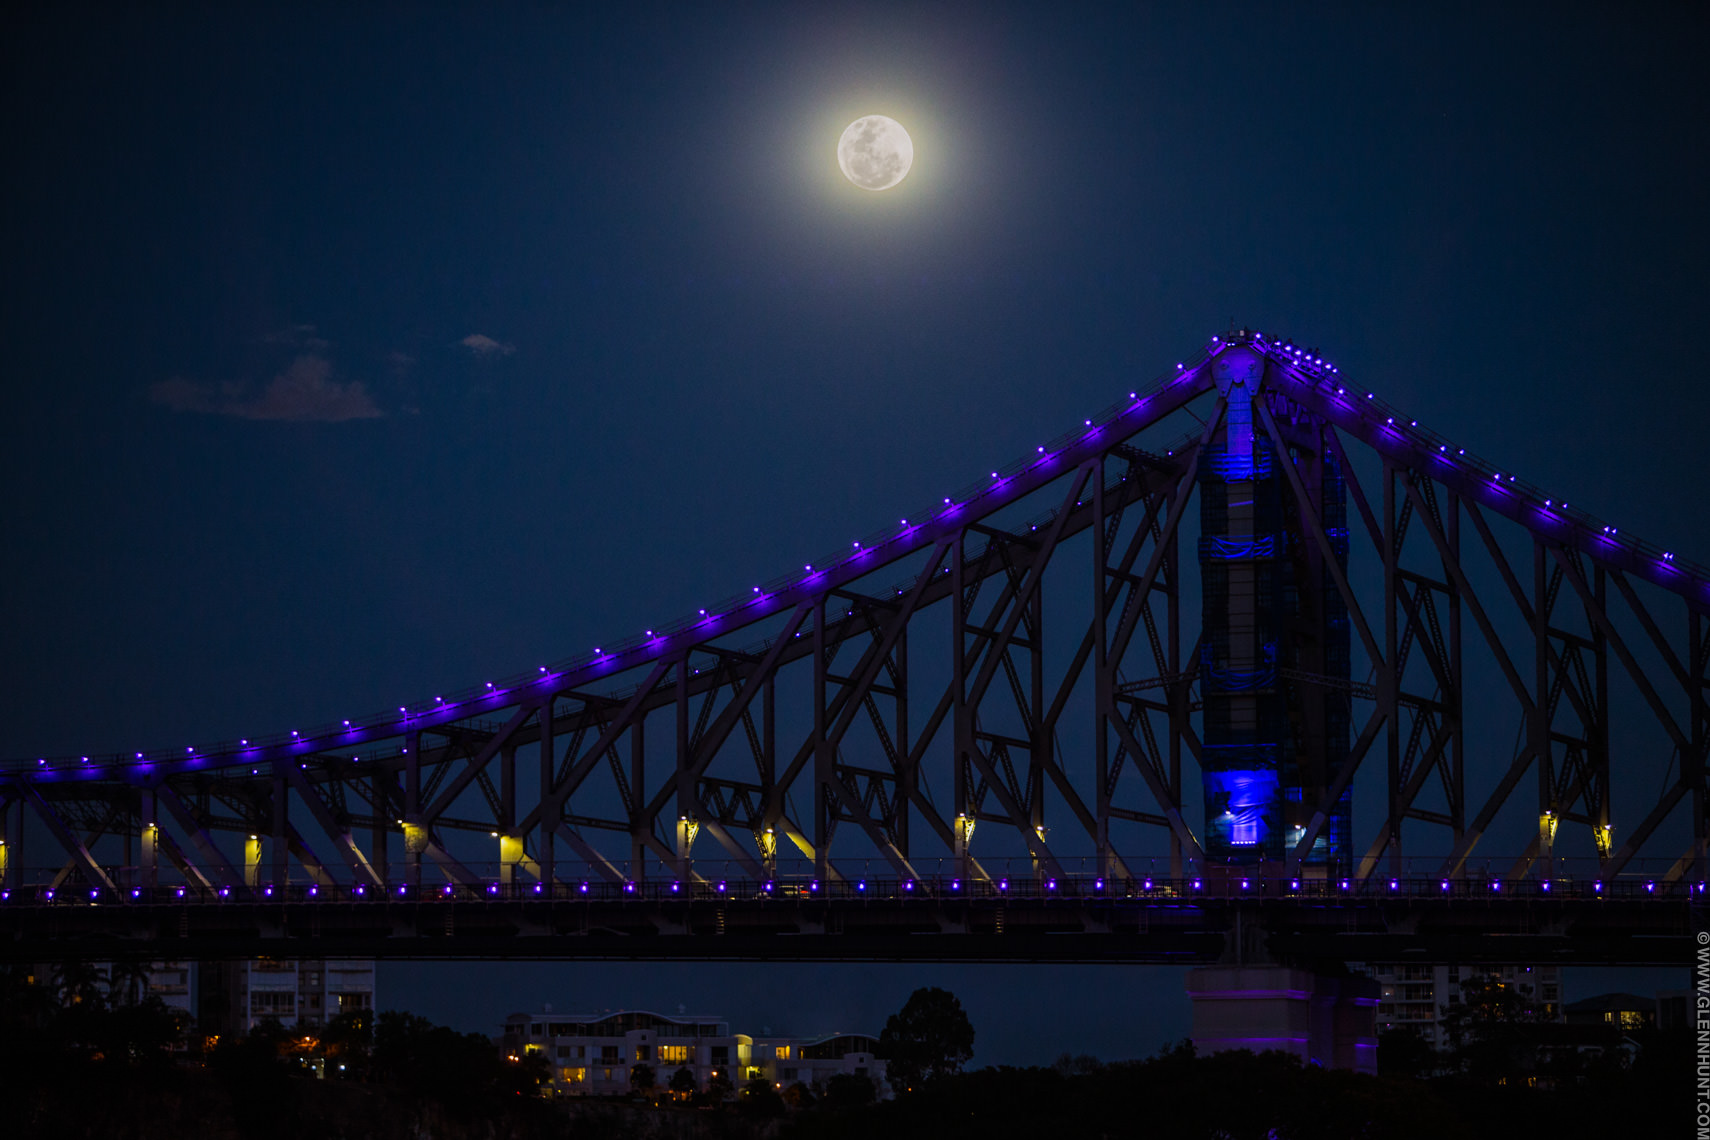 Supermoon Brisbane